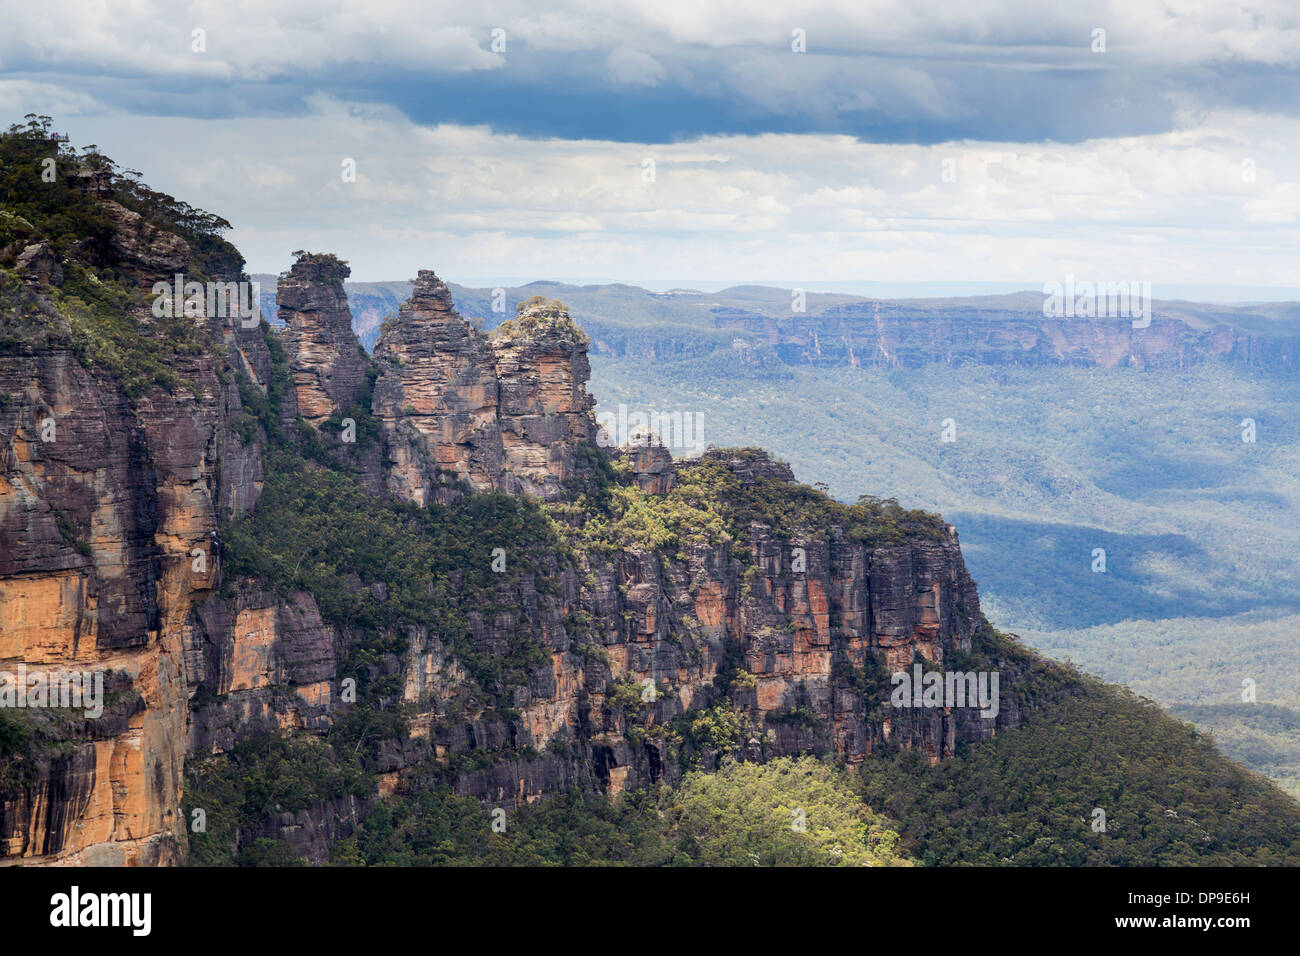 Three Sisters rock formation from Cliff View Lookout, Blue Mountains National Park, New South Wales, Australia - Stock Image